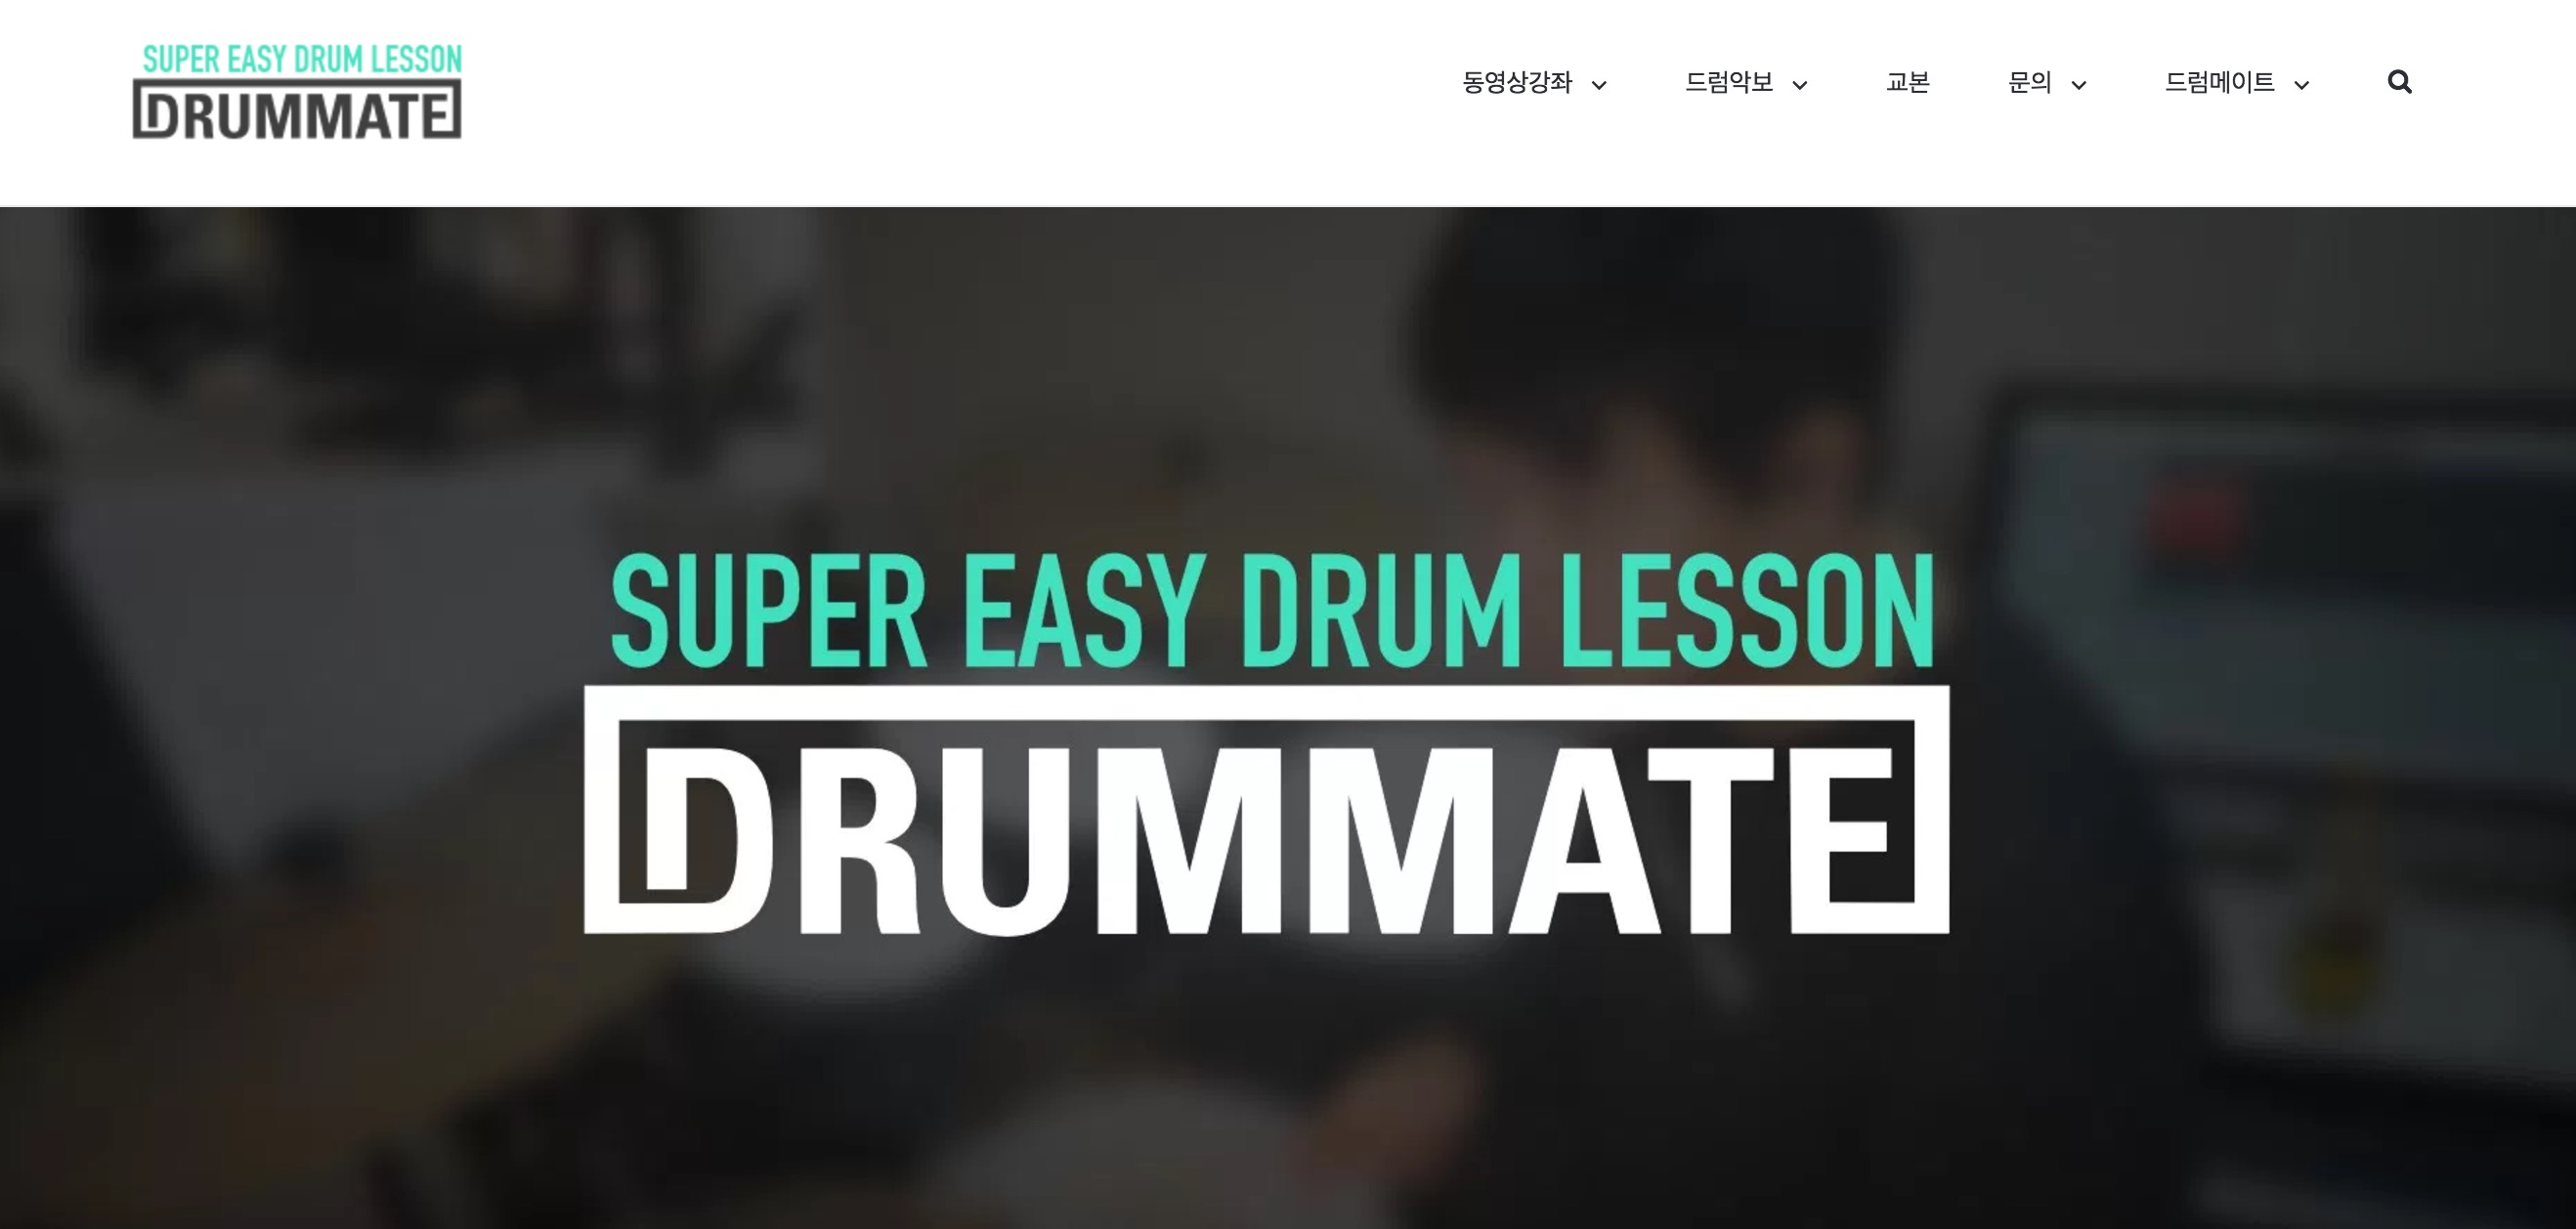 wordpress-woocommerce-case-codemshop-drum-mate-1